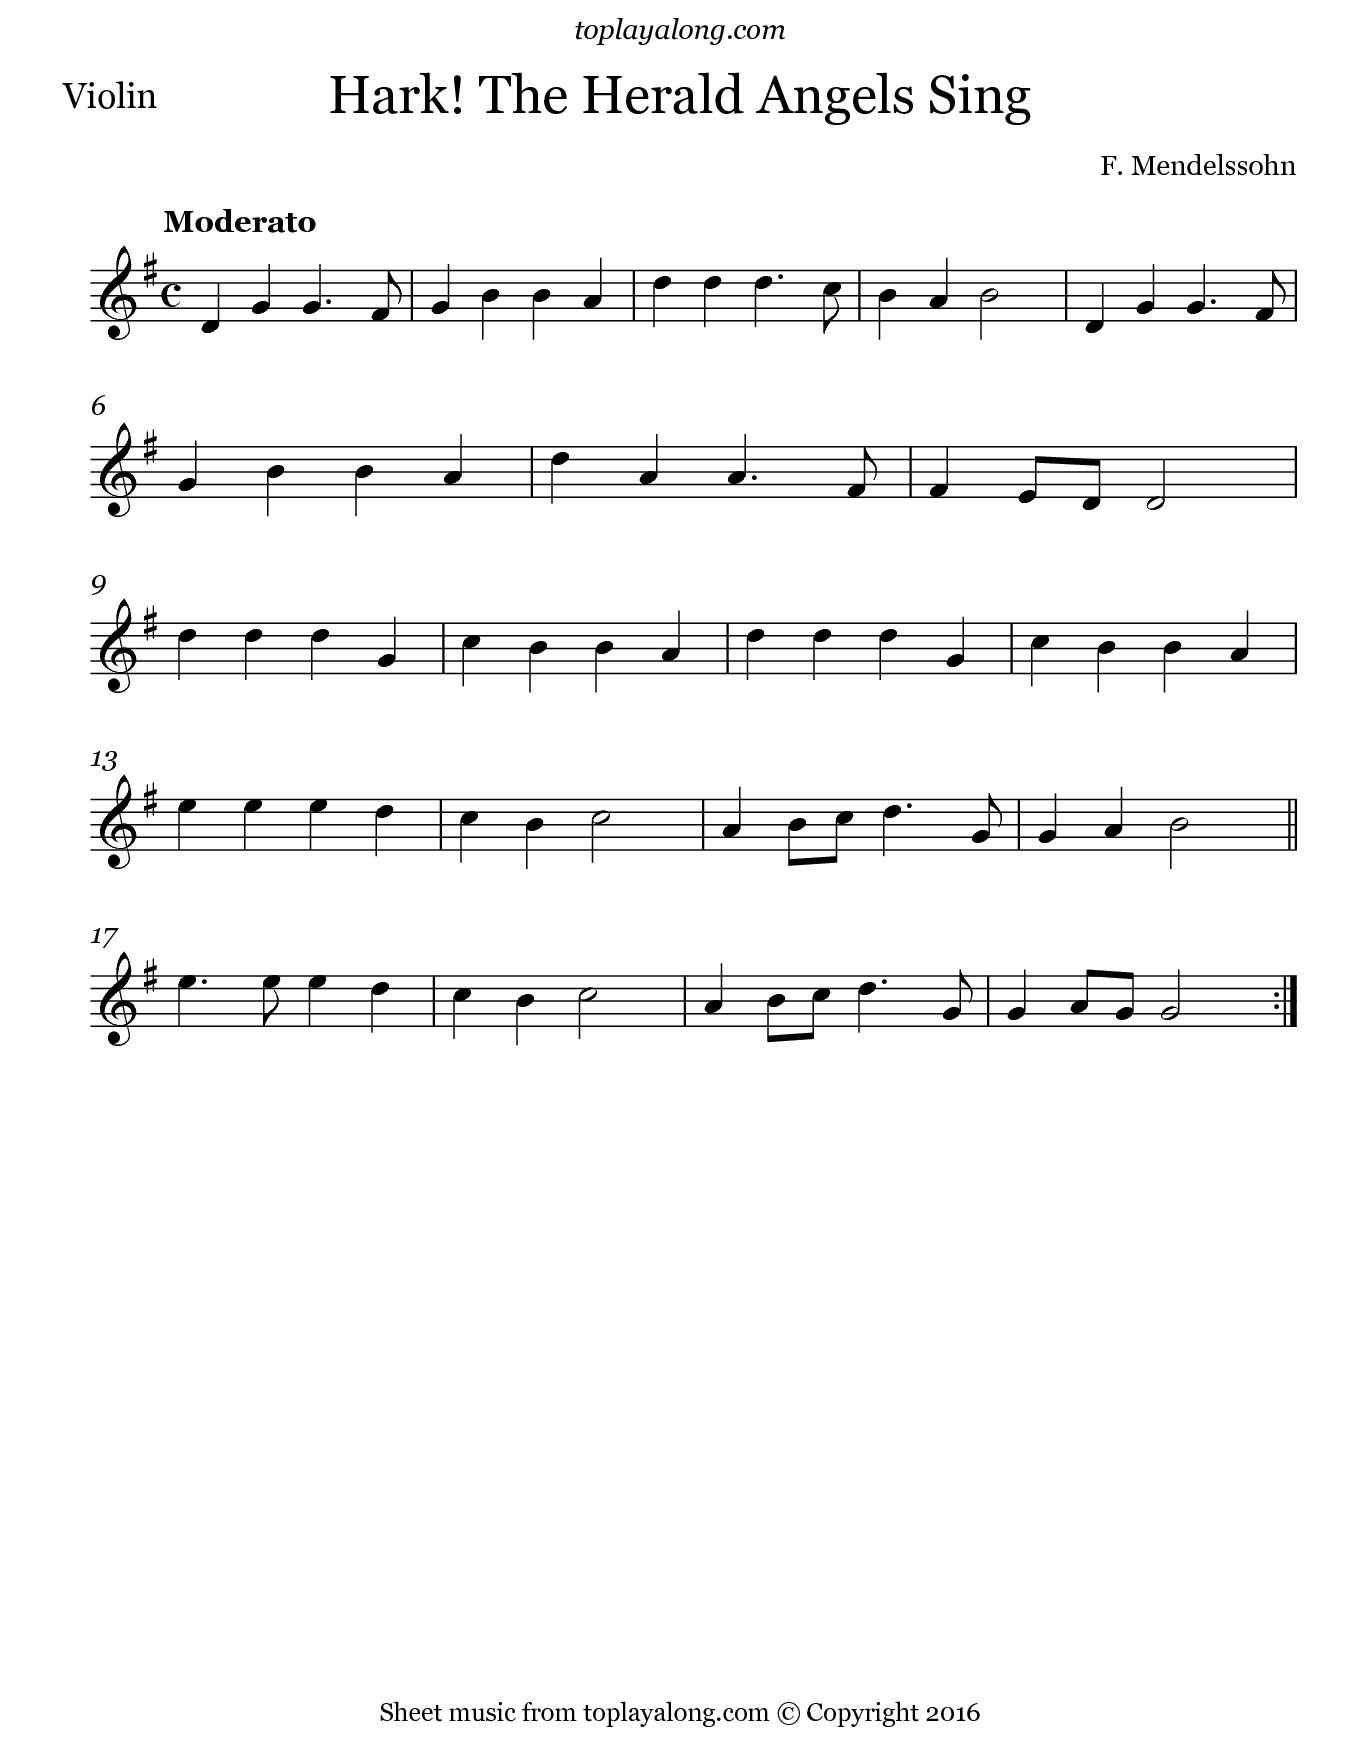 Hark! The Herald Angels Sing by Mendelssohn. Sheet music for Violin, page 1.